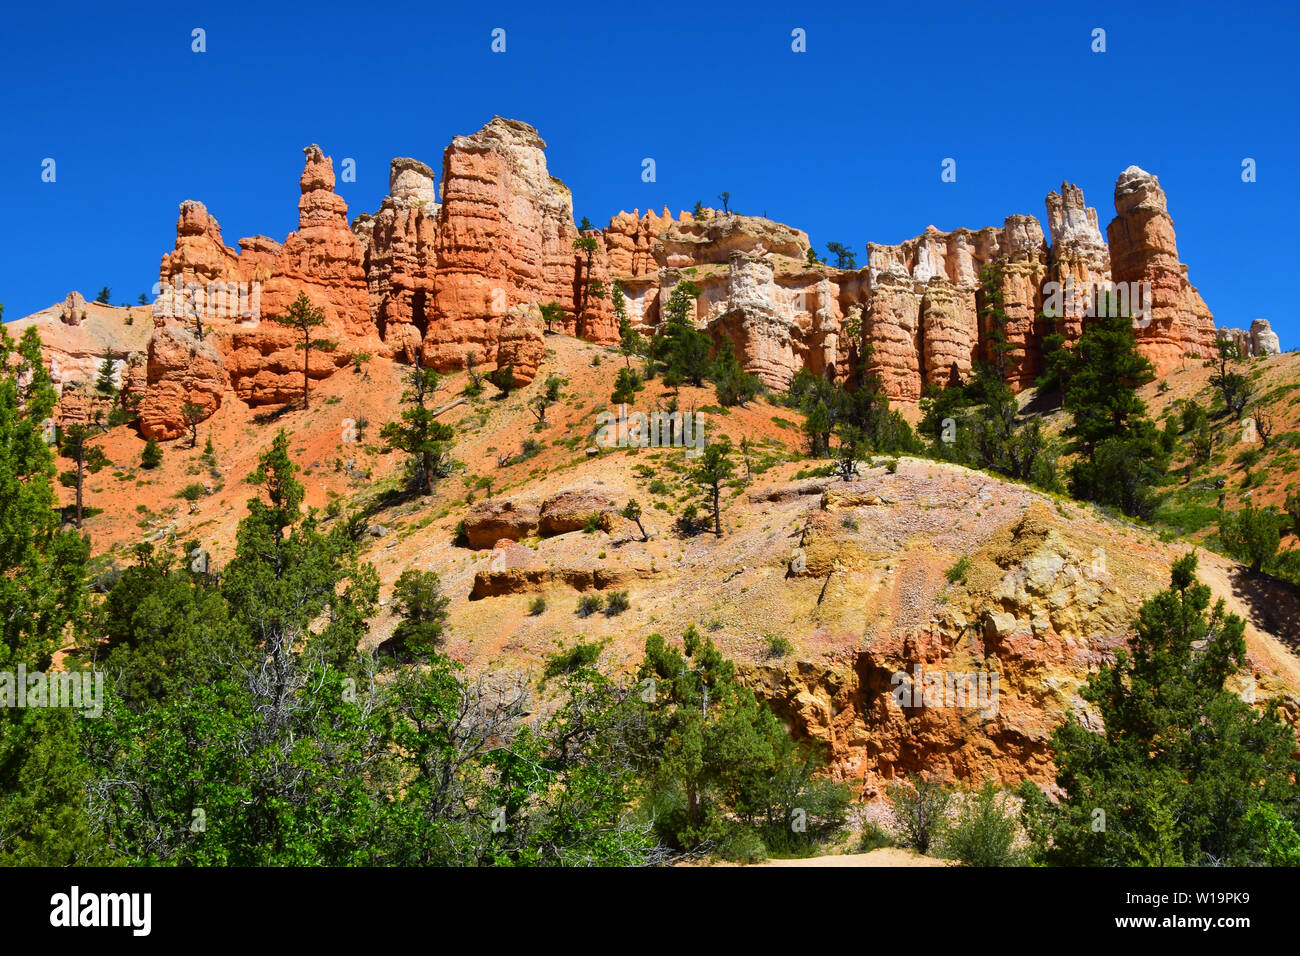 Rock formations in Southwestern Utah, USA Stock Photo